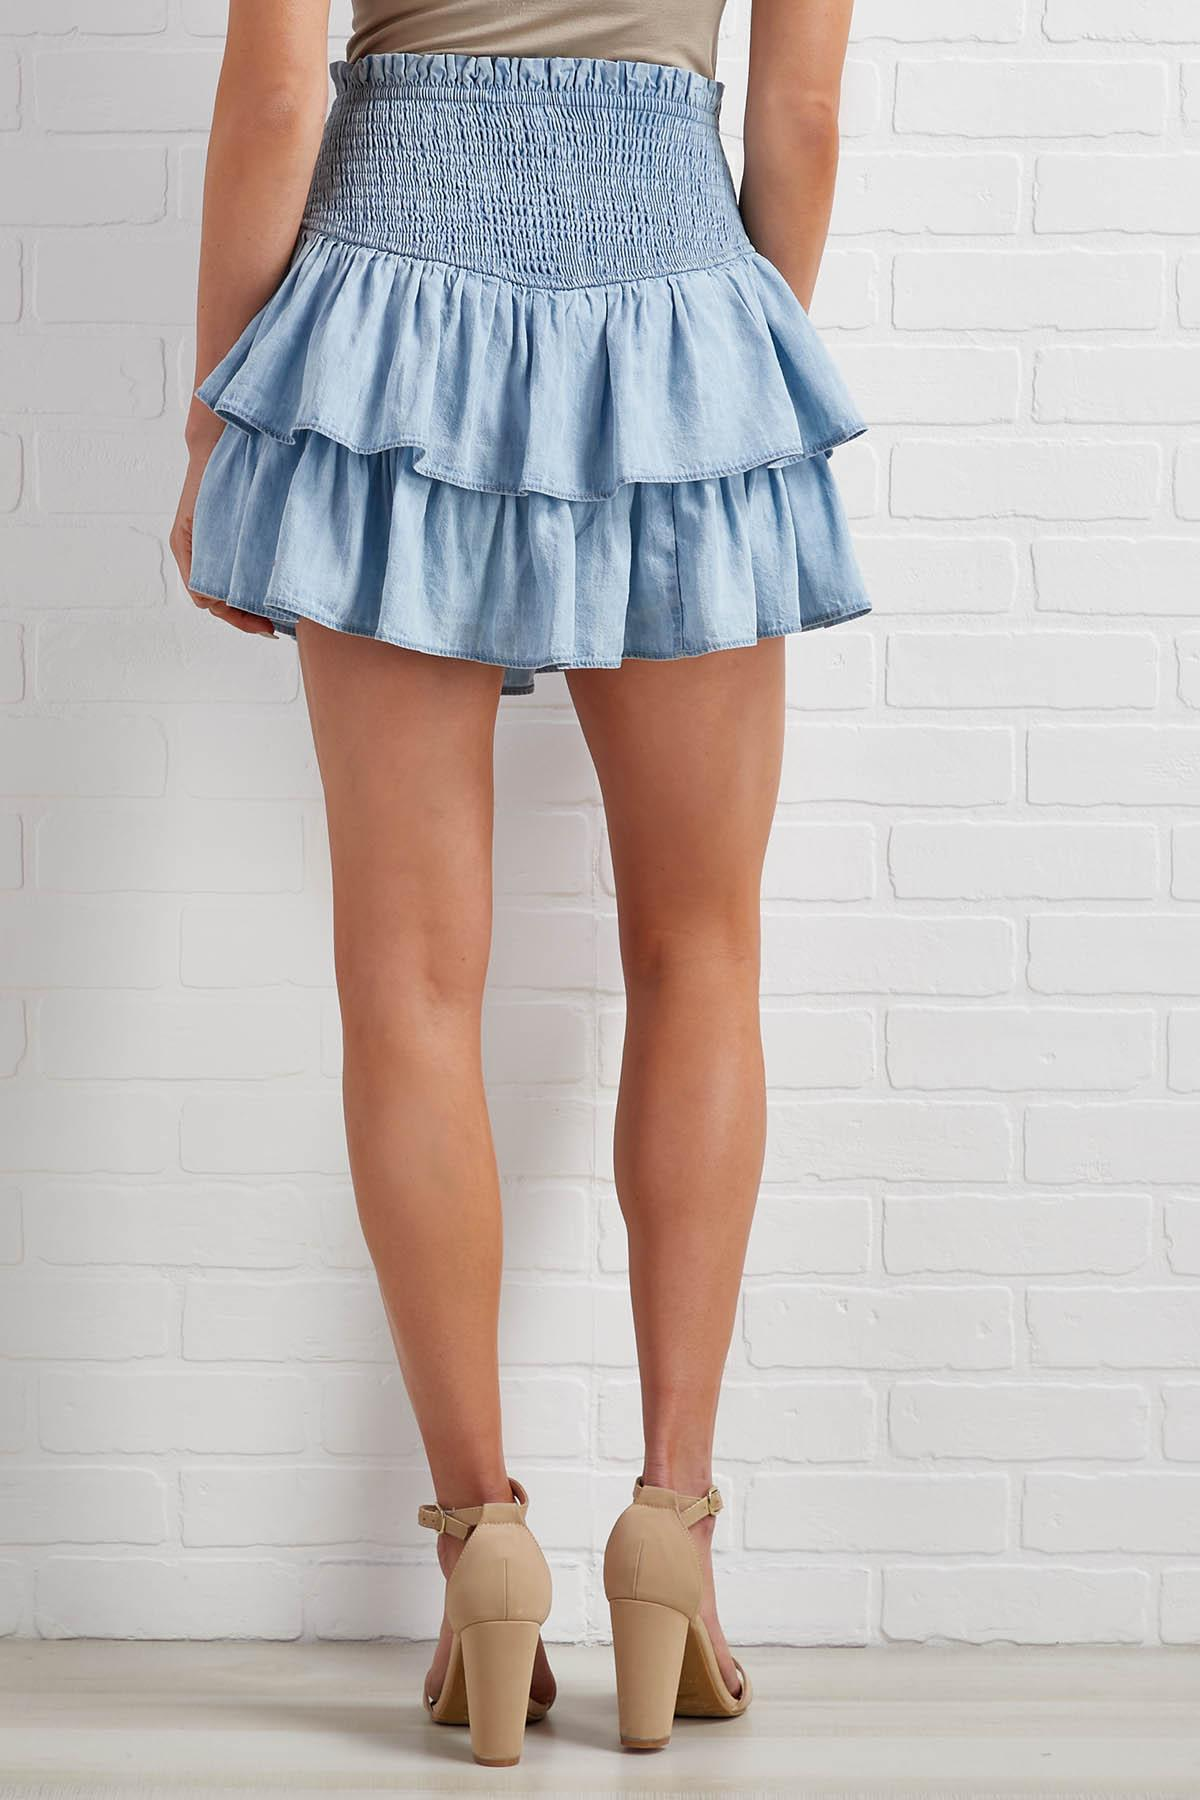 Pause For A Mini Skort